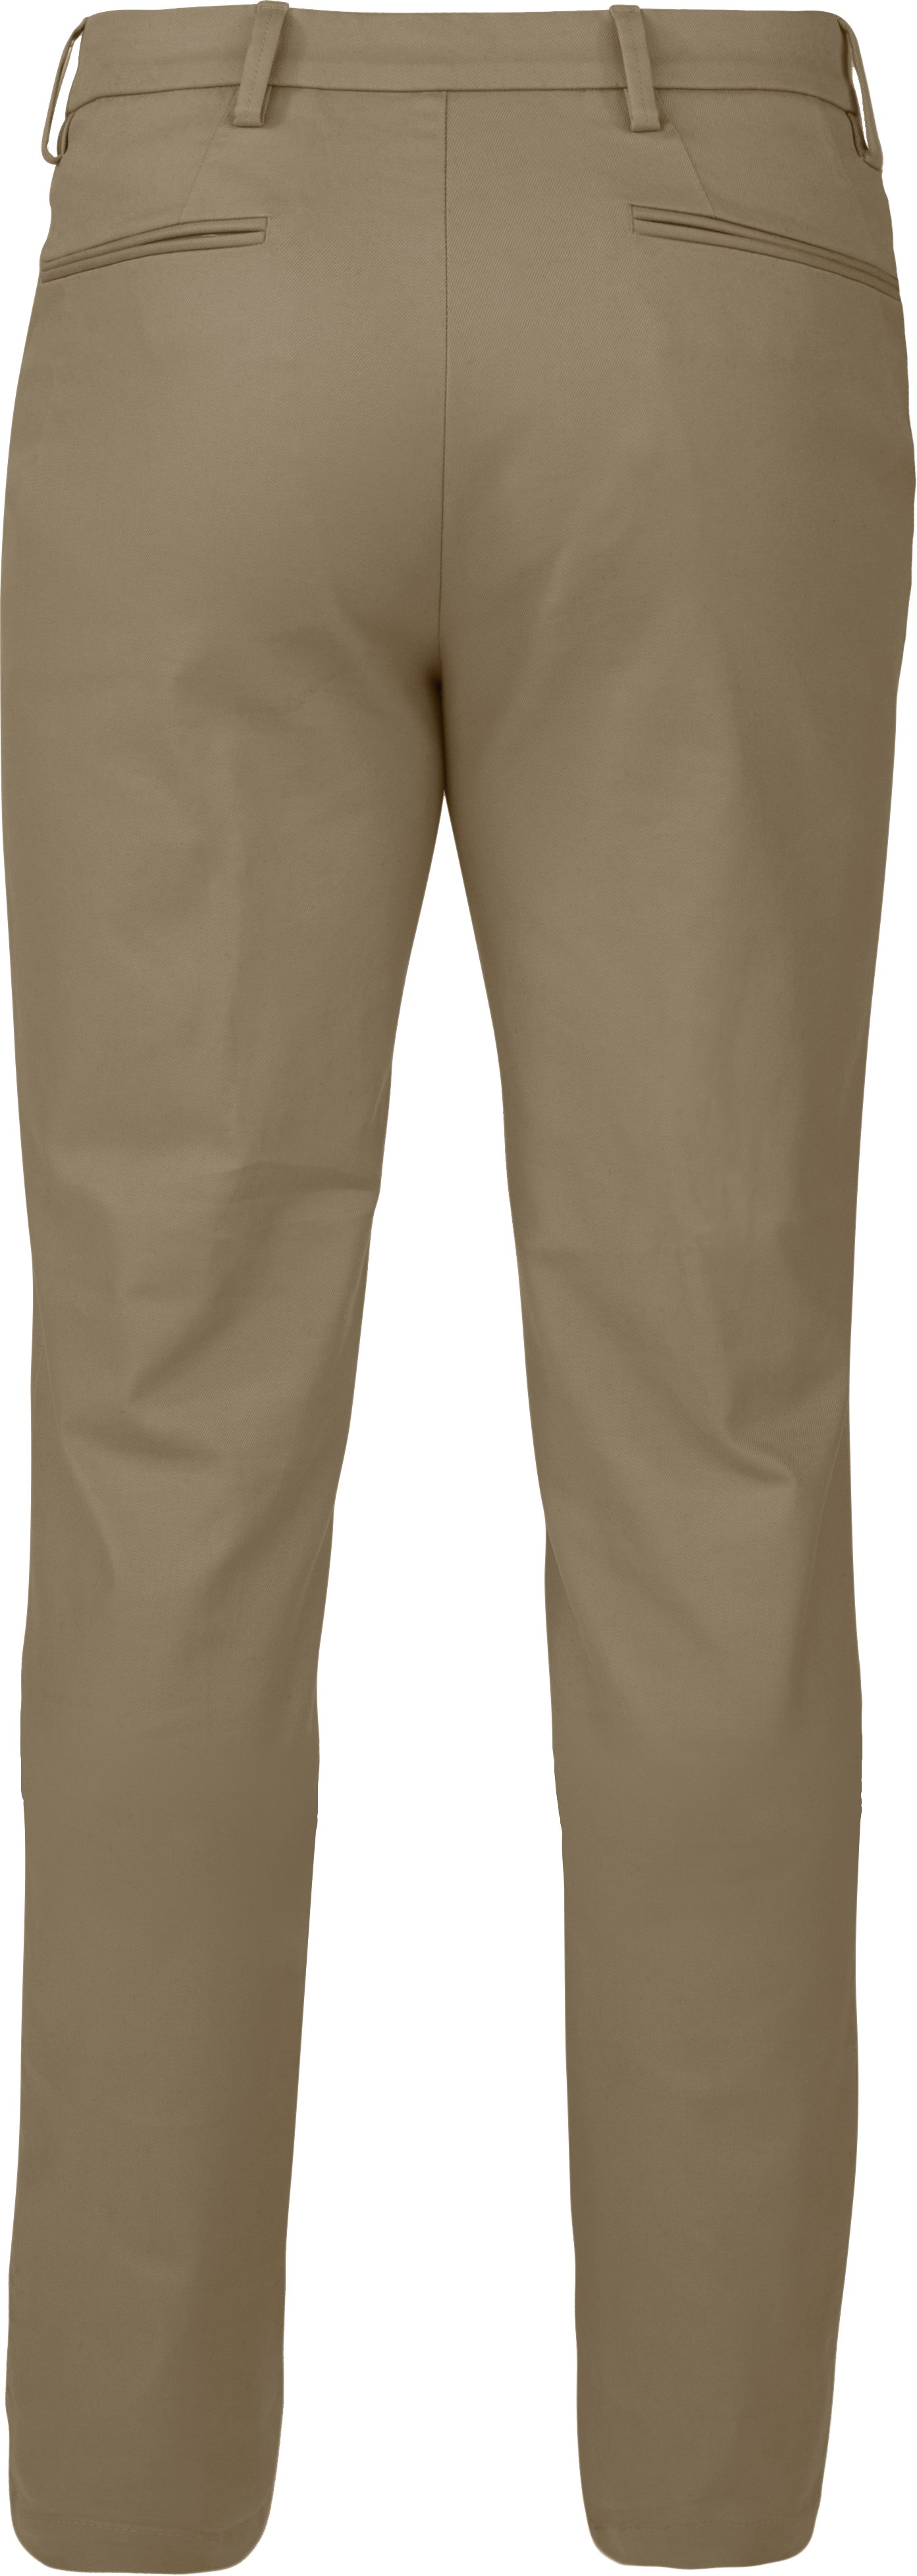 Men's Fieldhouse Rowing Chinos, Khaki, undefined